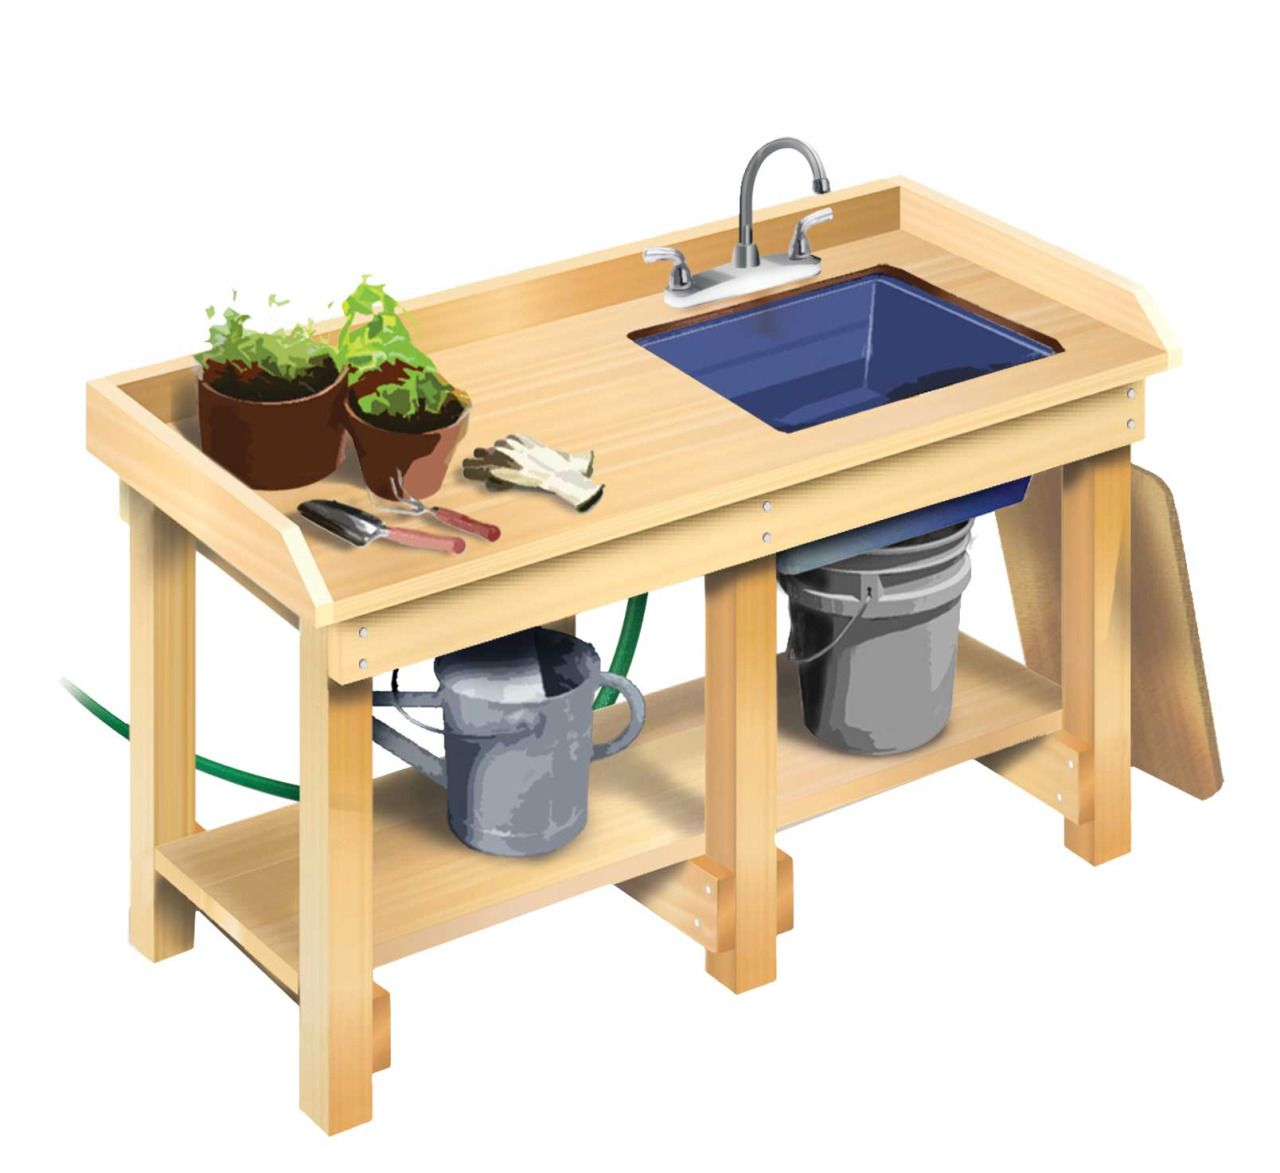 How to Build a Workbench Our DIY workbench plans create a